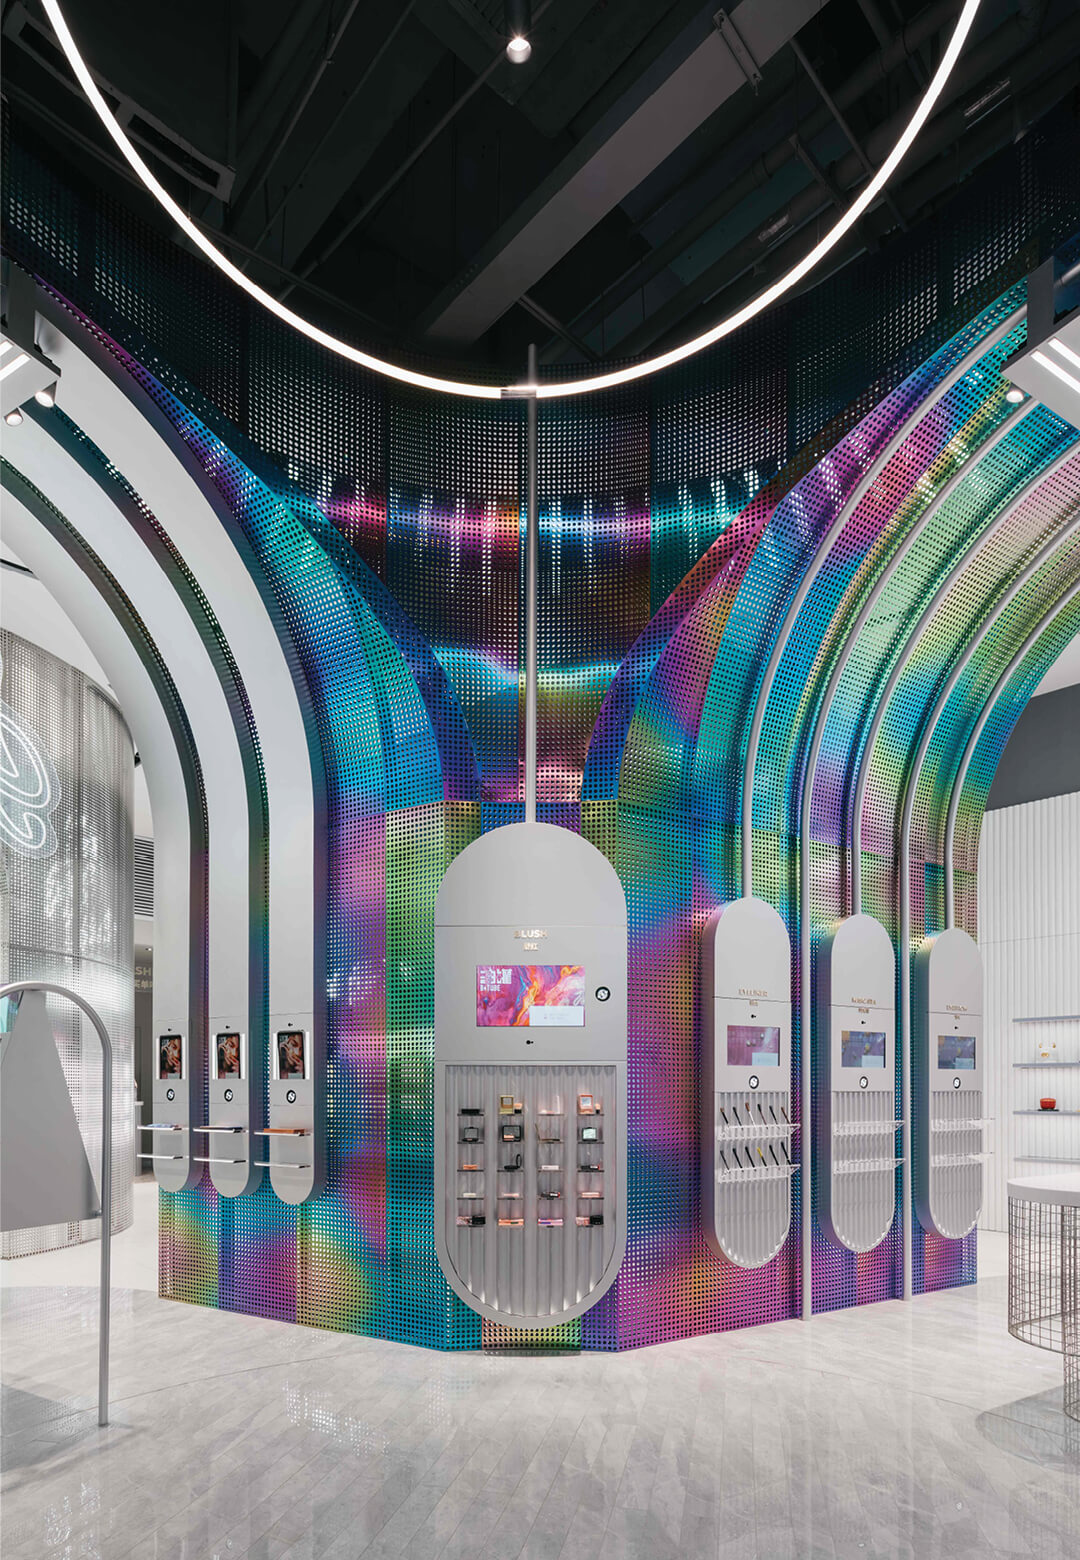 B+Tube's new flagship store in China designed by Storeage | B+Tube cosmetics retail store by Storeage | STIRworld